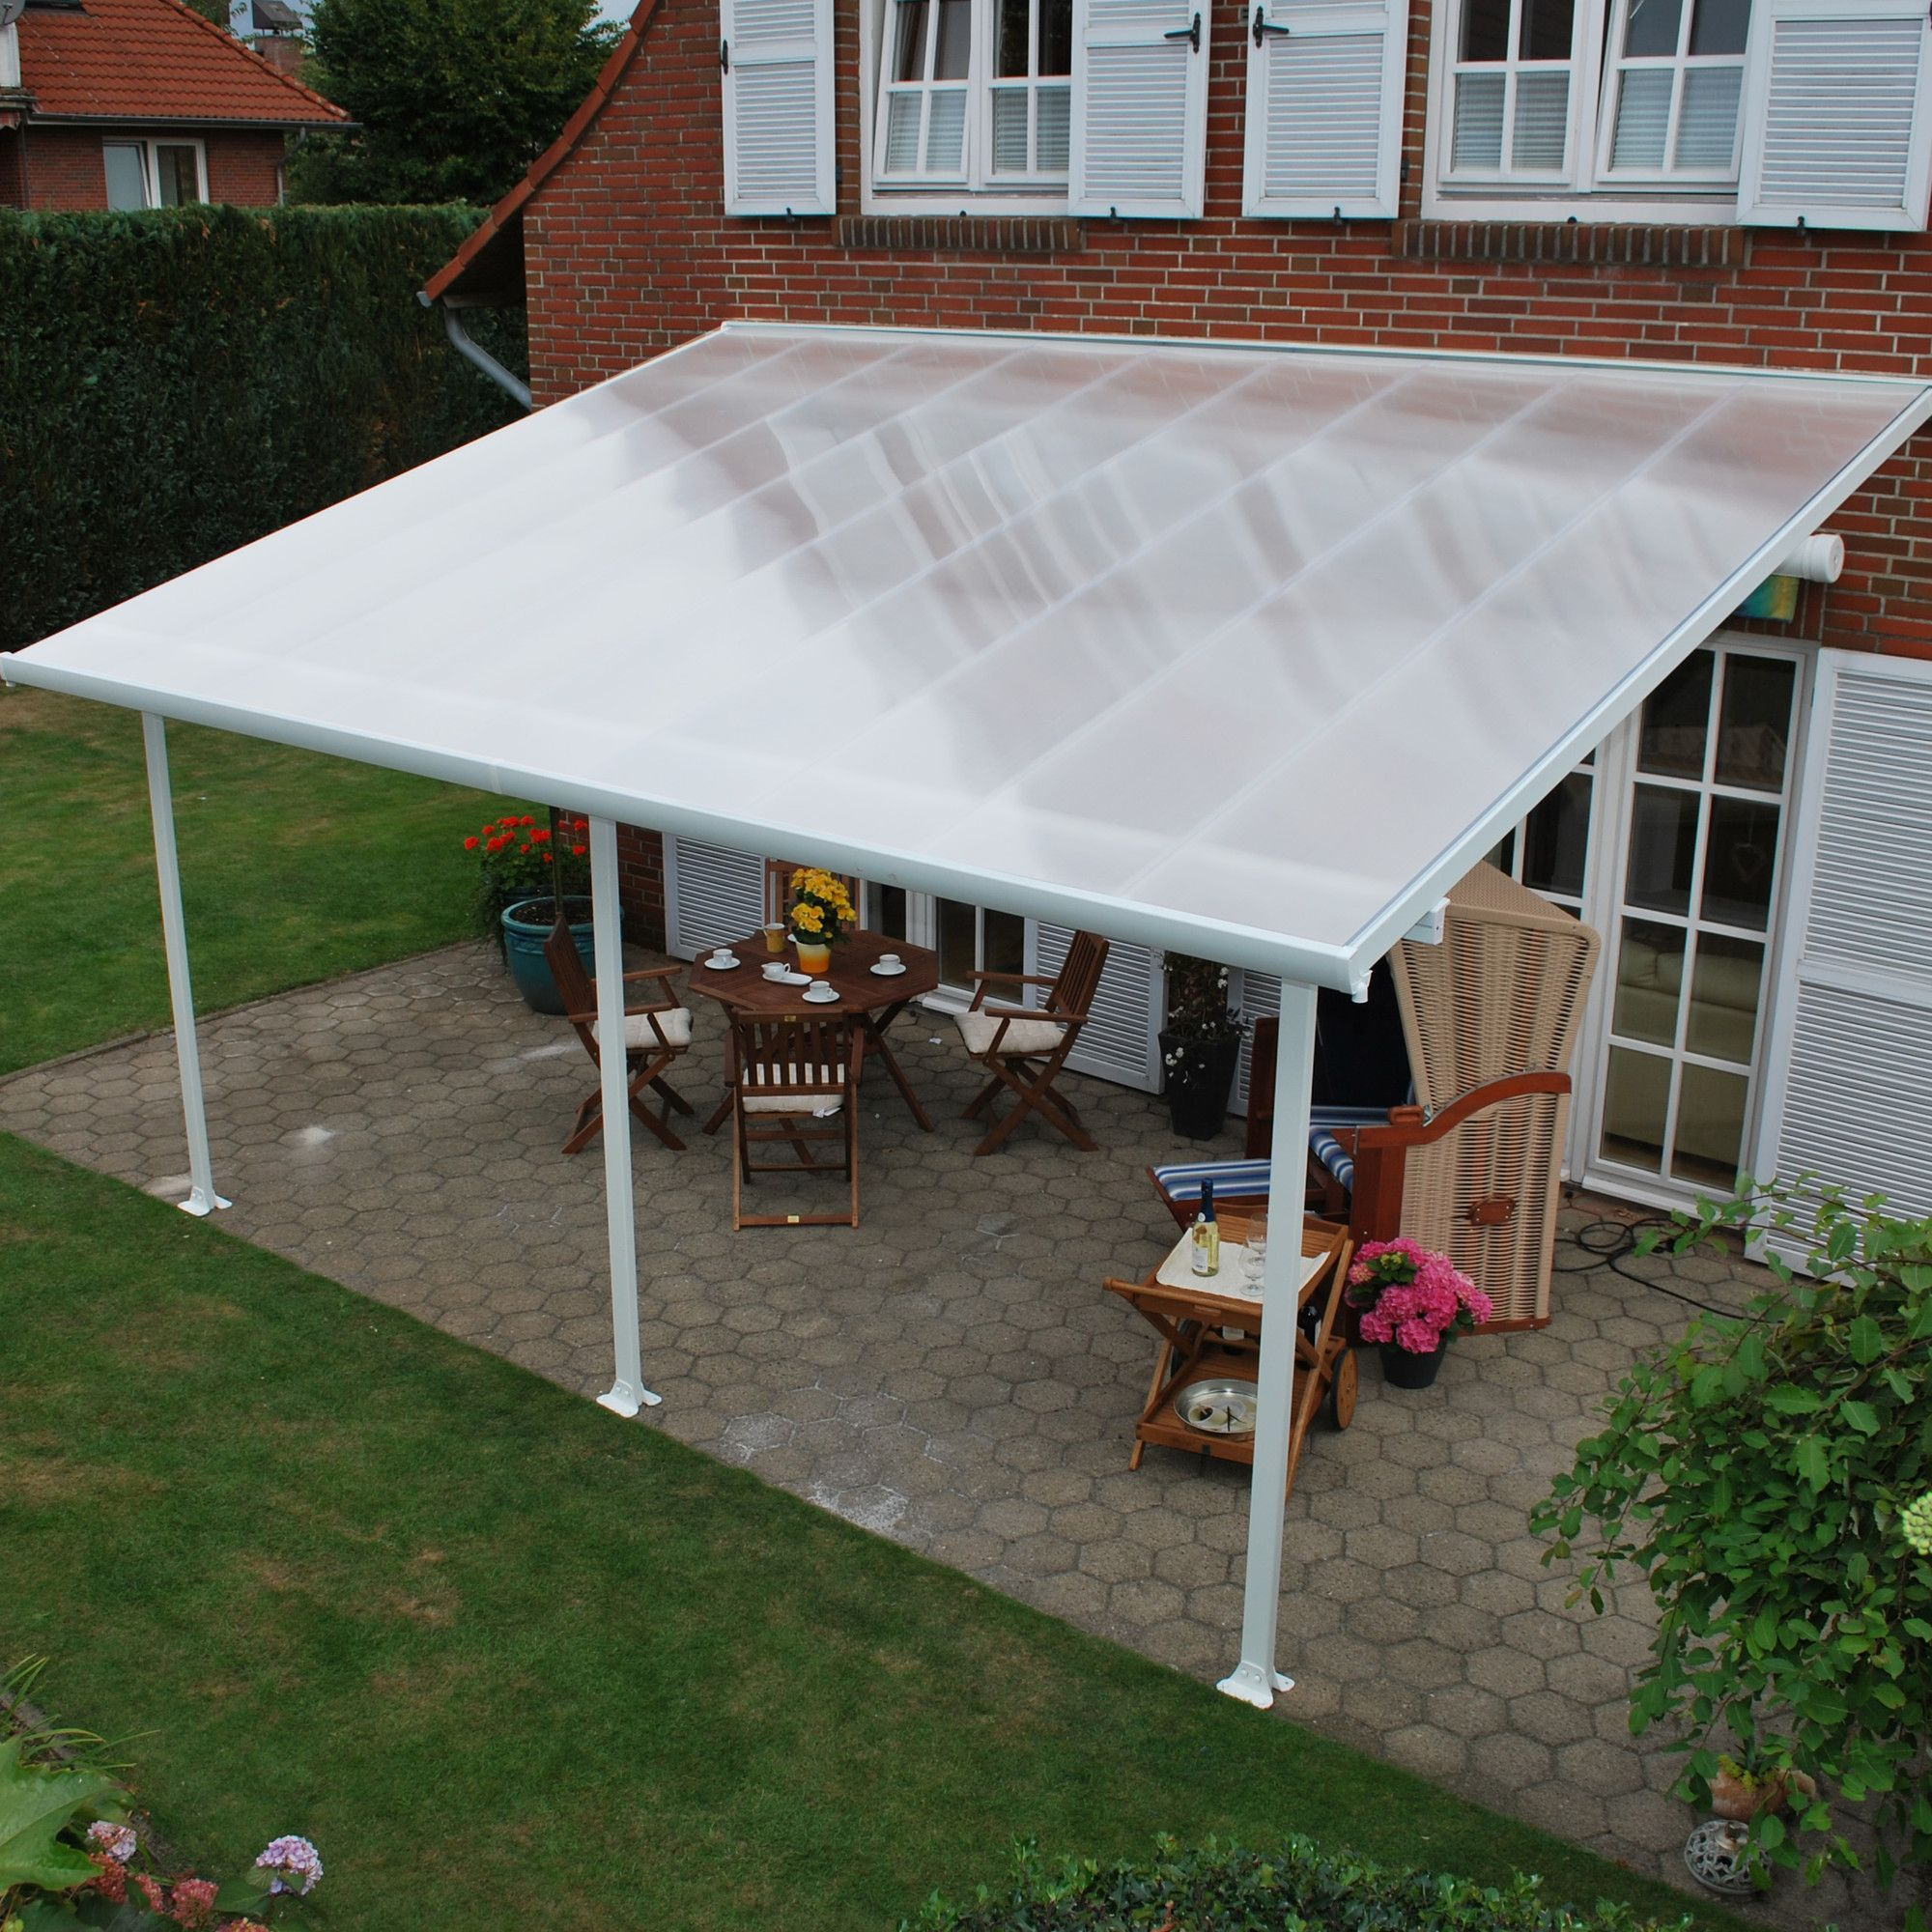 Feria 20 Ft W X 10 Ft D Plastic Standard Patio Awning Patio Awning Patio Canopy Covered Patio